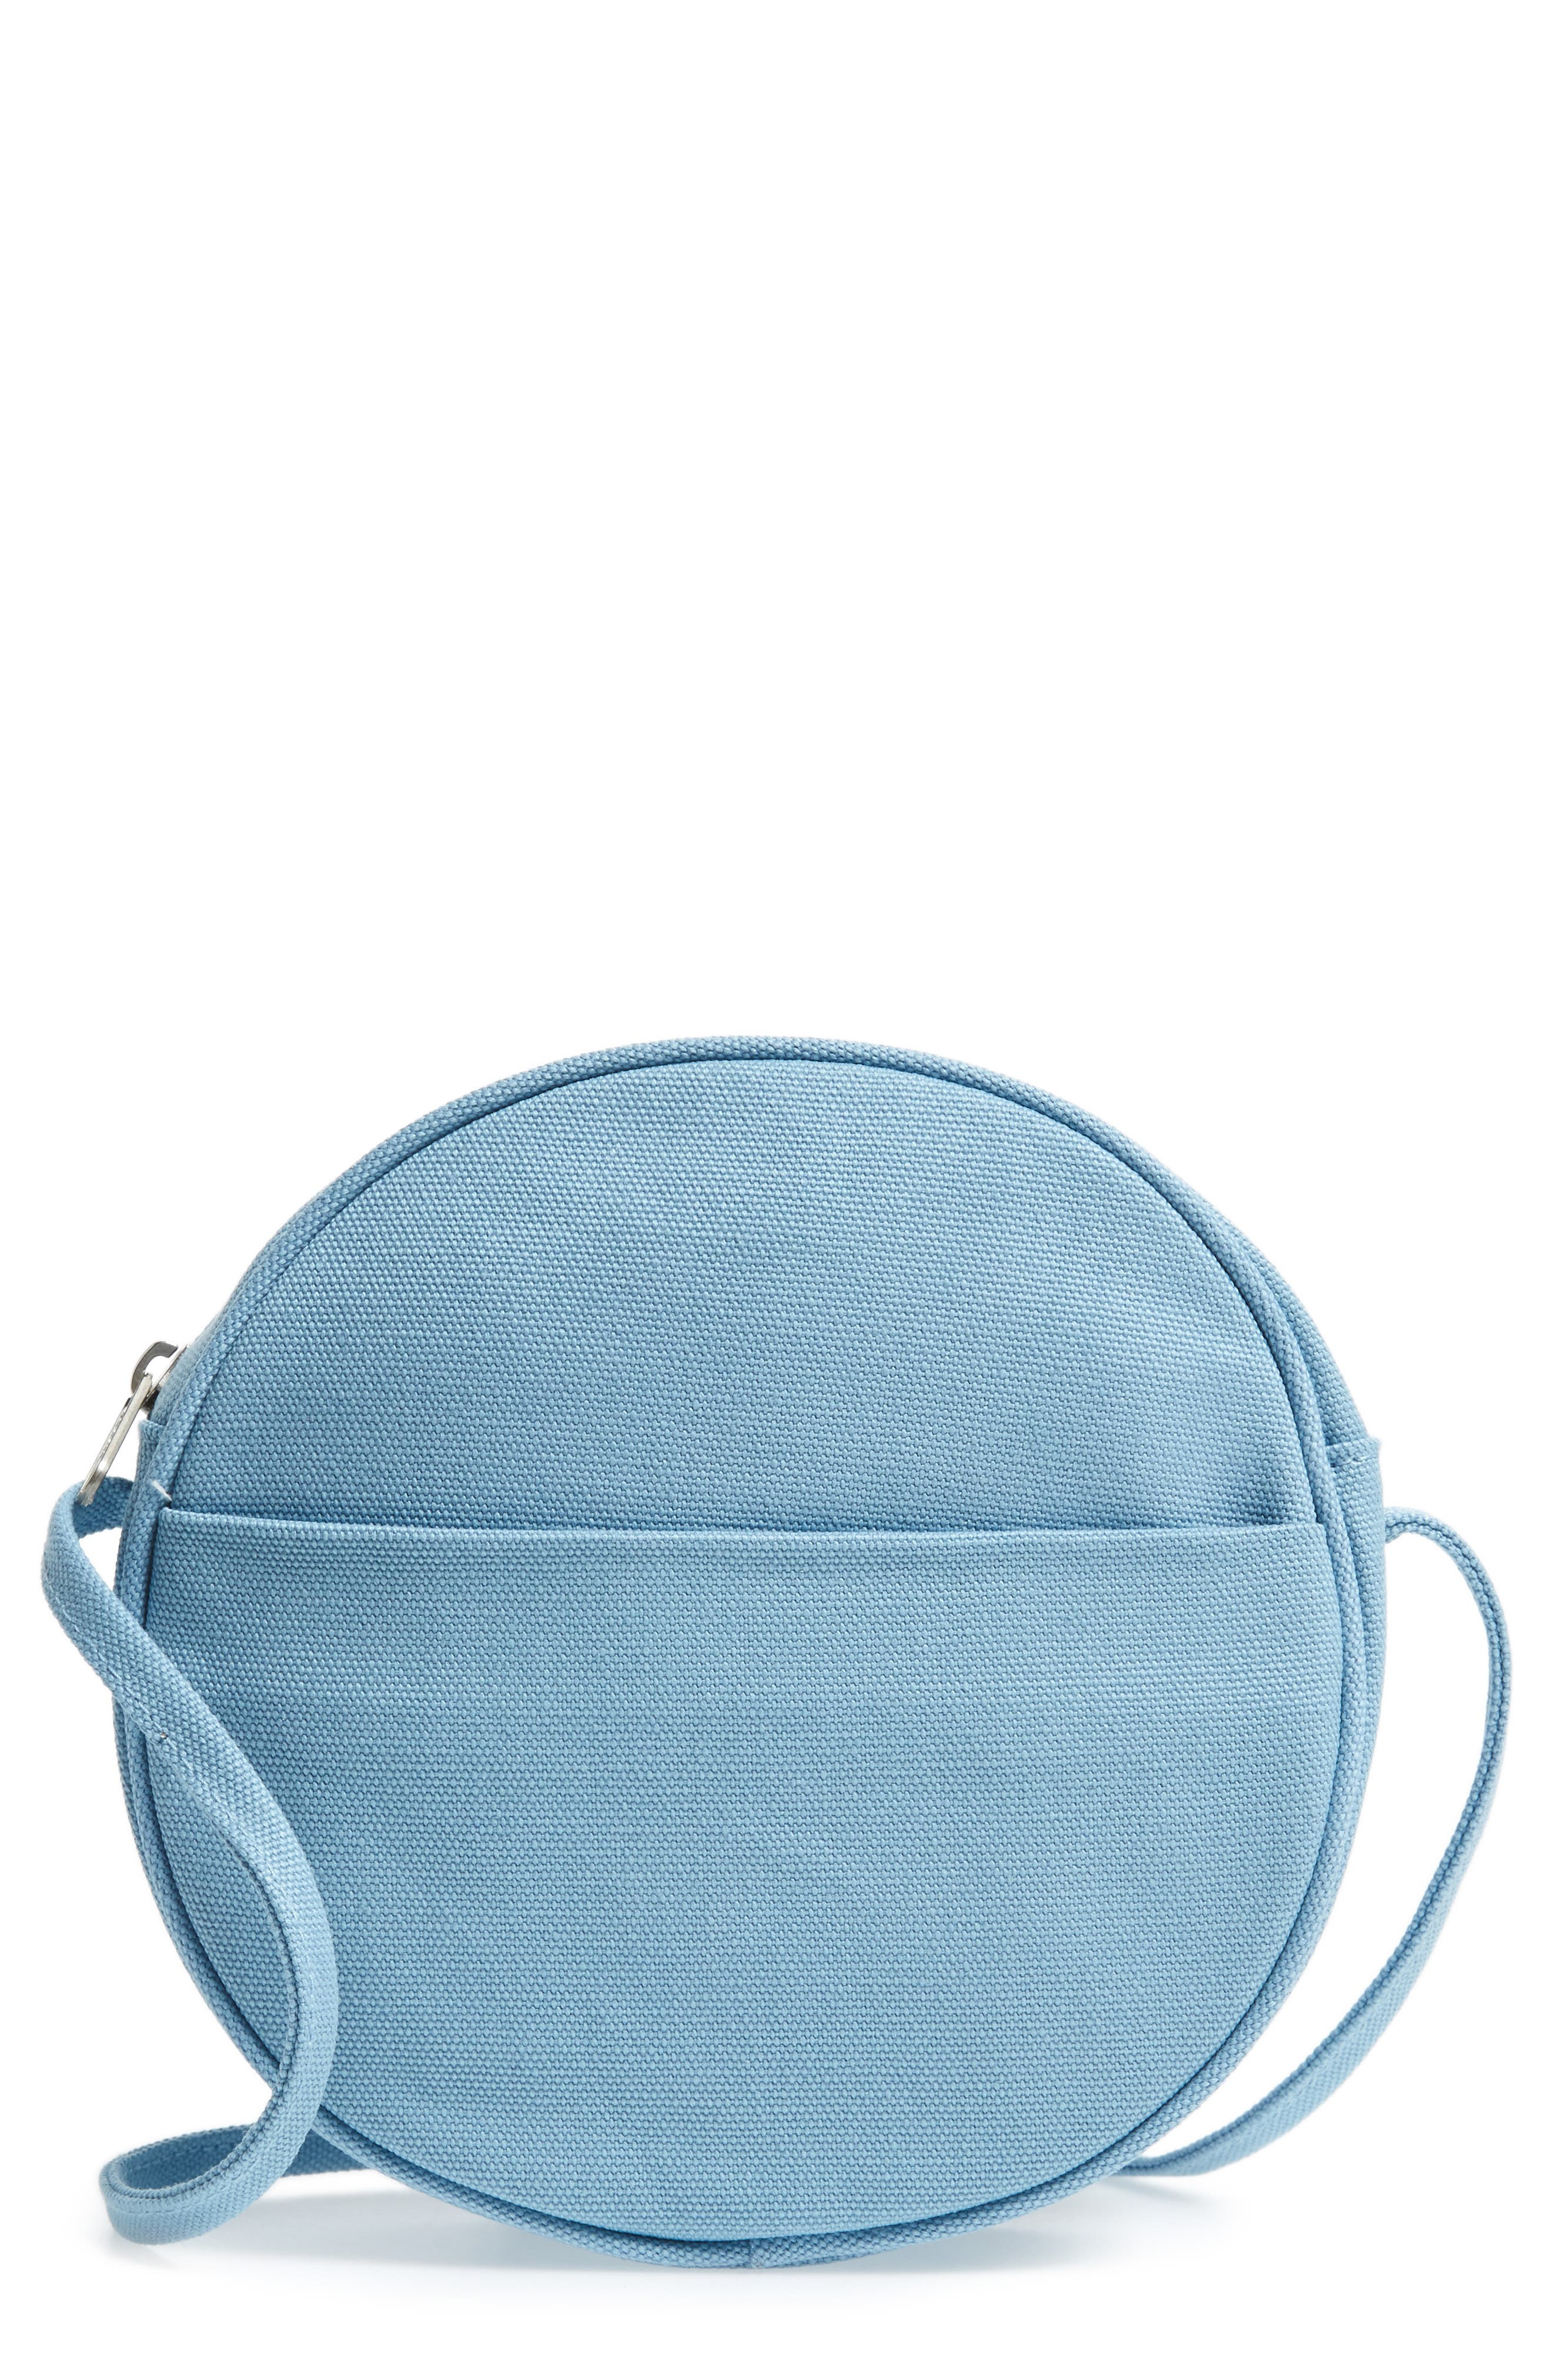 Baggu Small Canvas Shoulder Bag